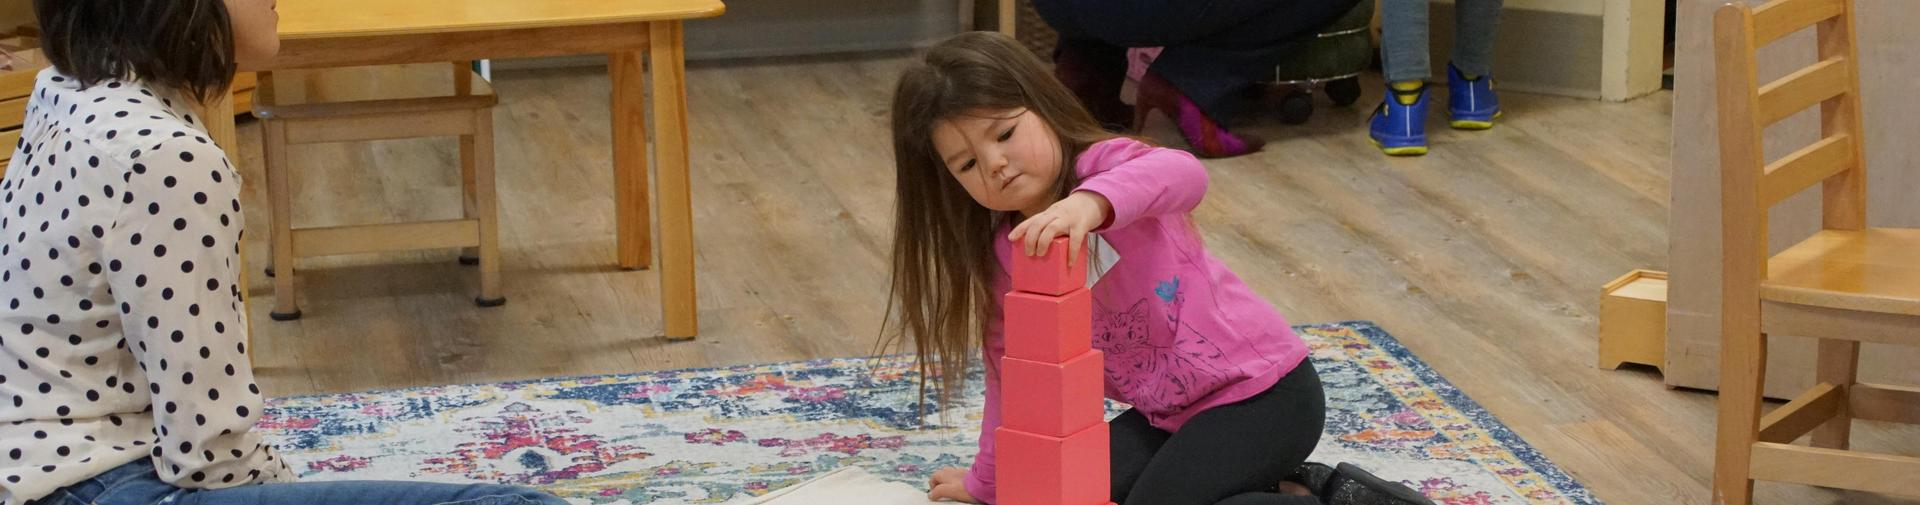 Child building the pink tower